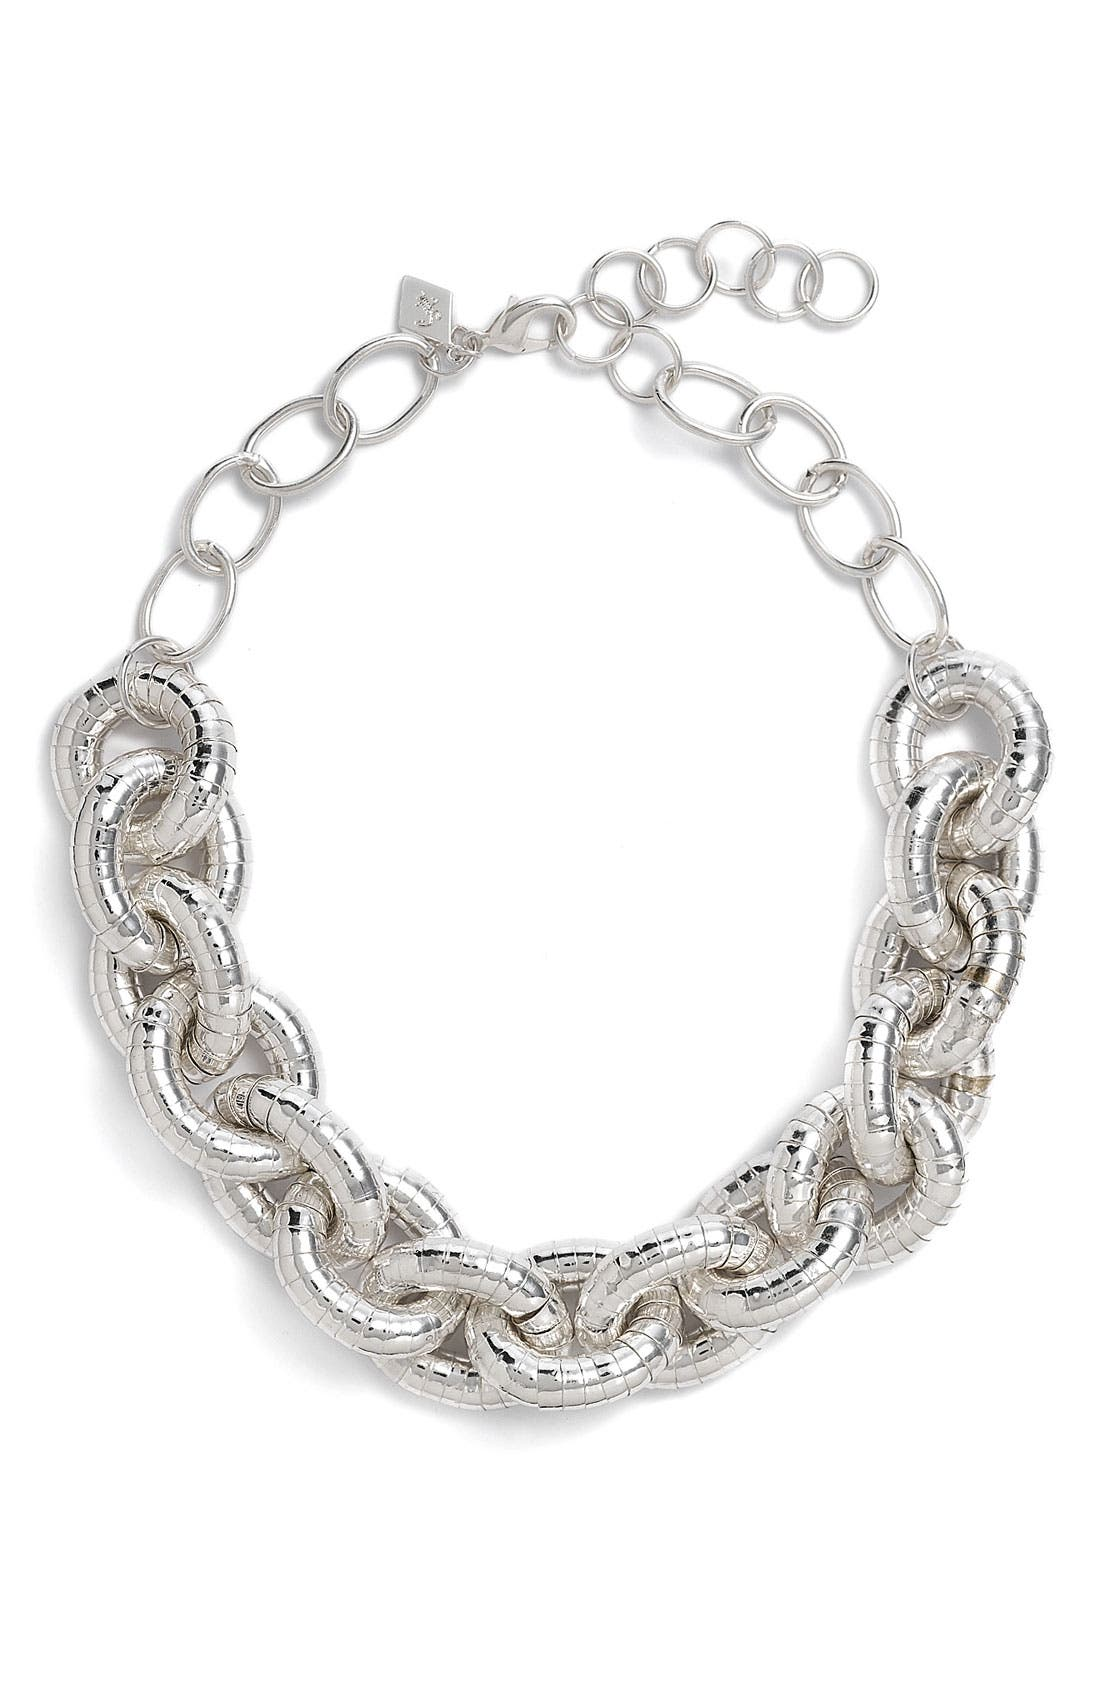 Main Image - Sequin Textured Status Link Necklace